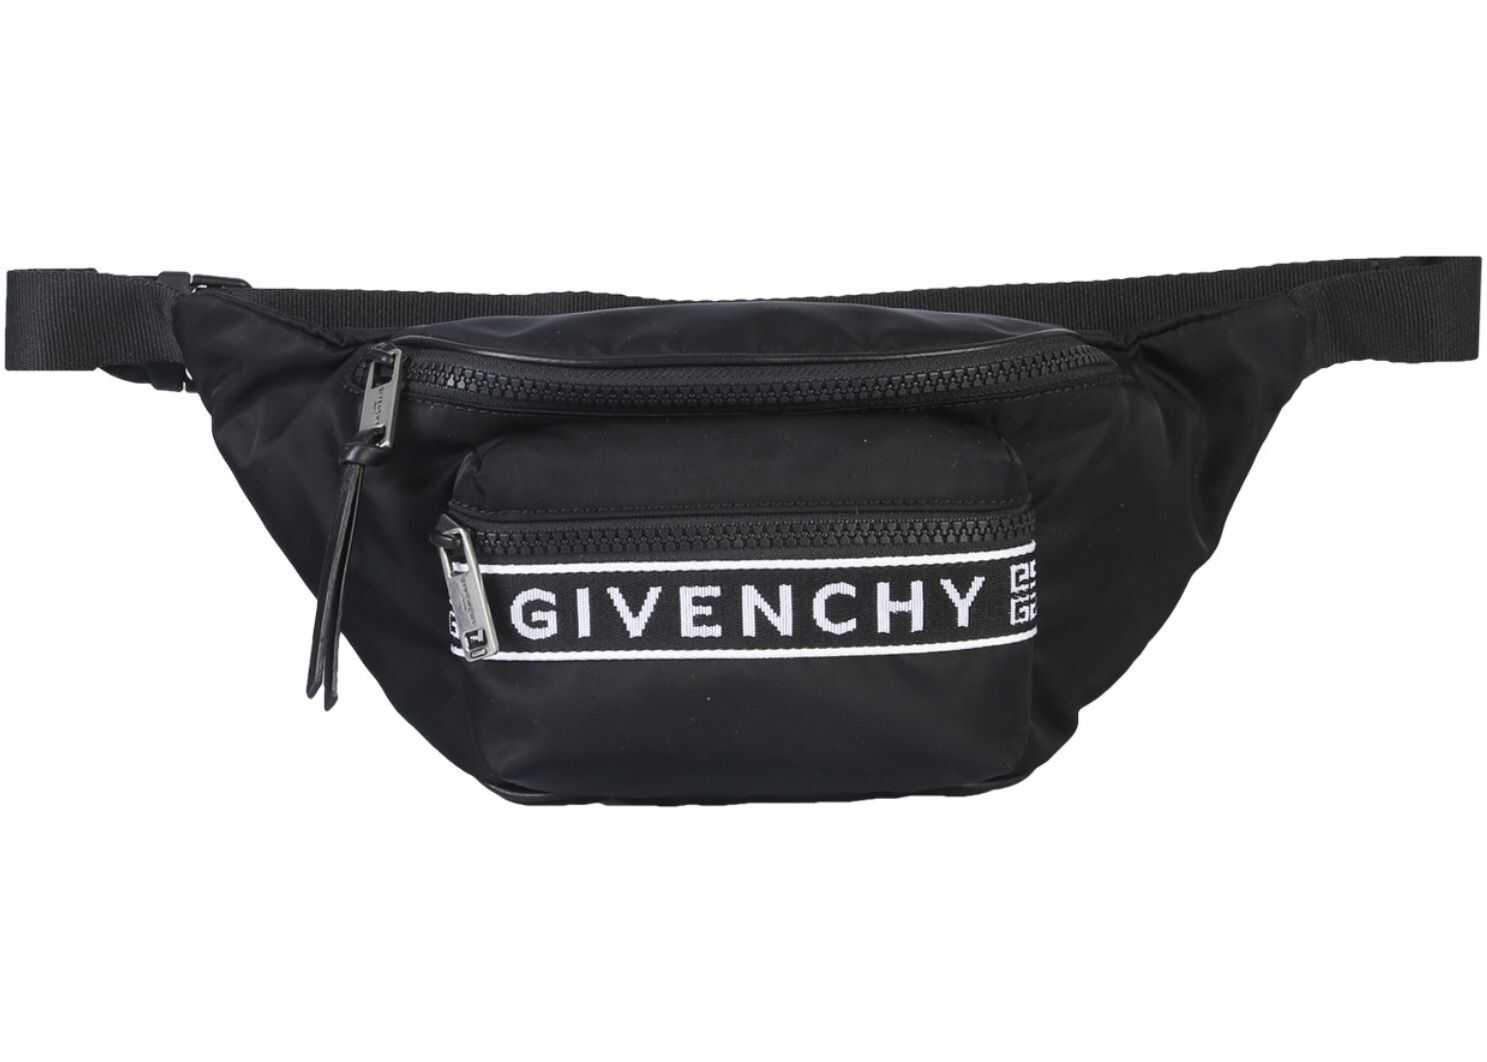 Givenchy Pouch With Logo BLACK